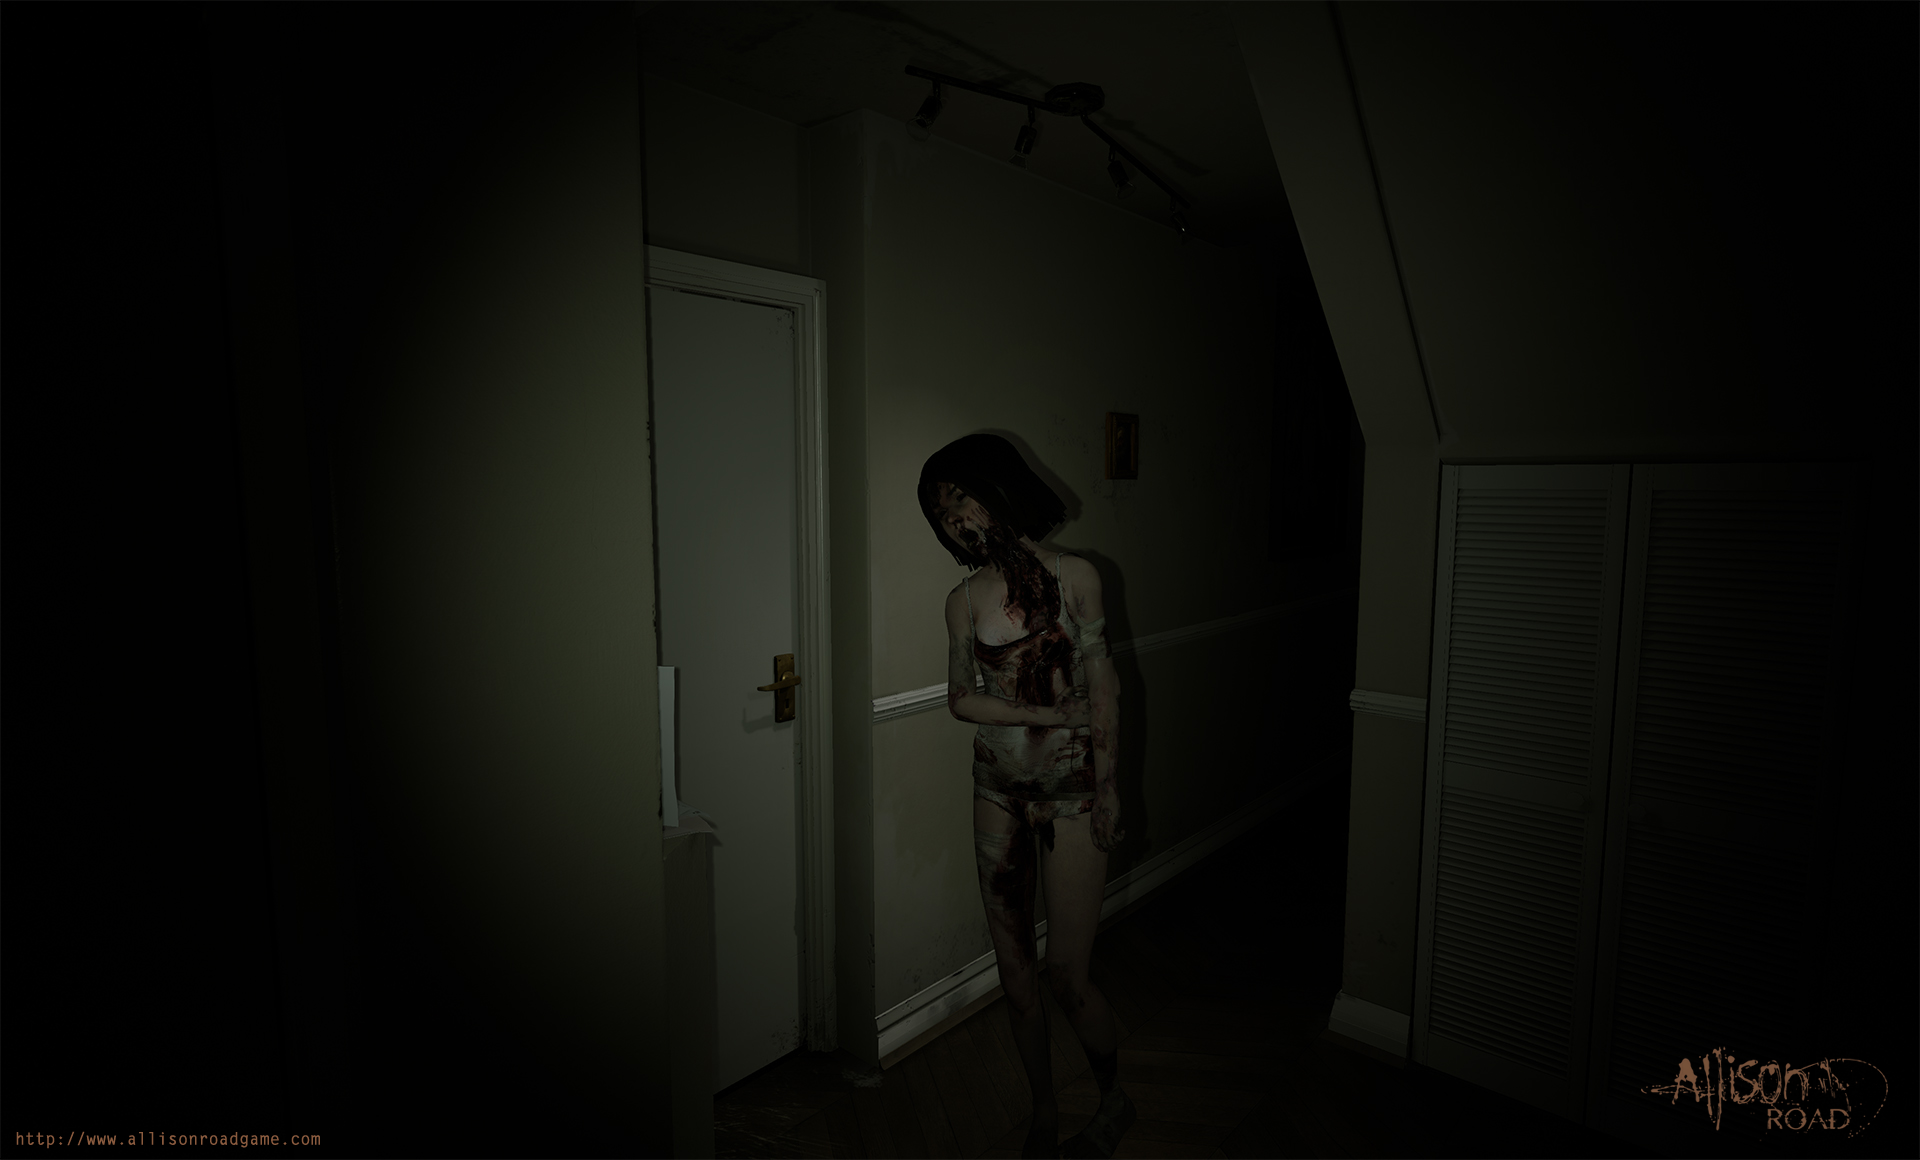 UNILAD hallway lily12 Allison Road Might Be The Horror Game Weve All Been Waiting For